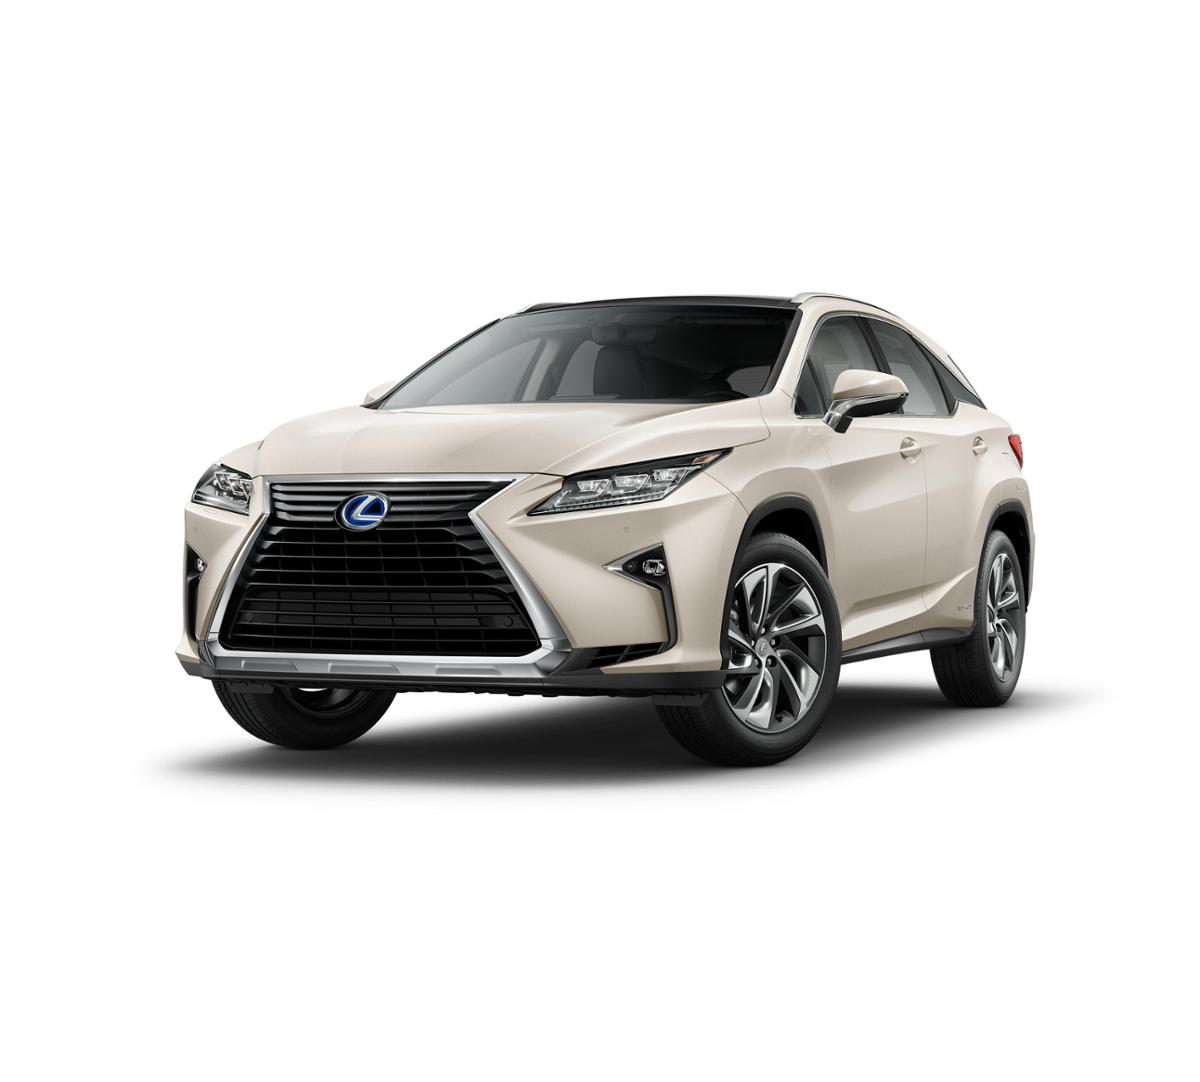 2019 Lexus RX 450h Vehicle Photo in Santa Barbara, CA 93105